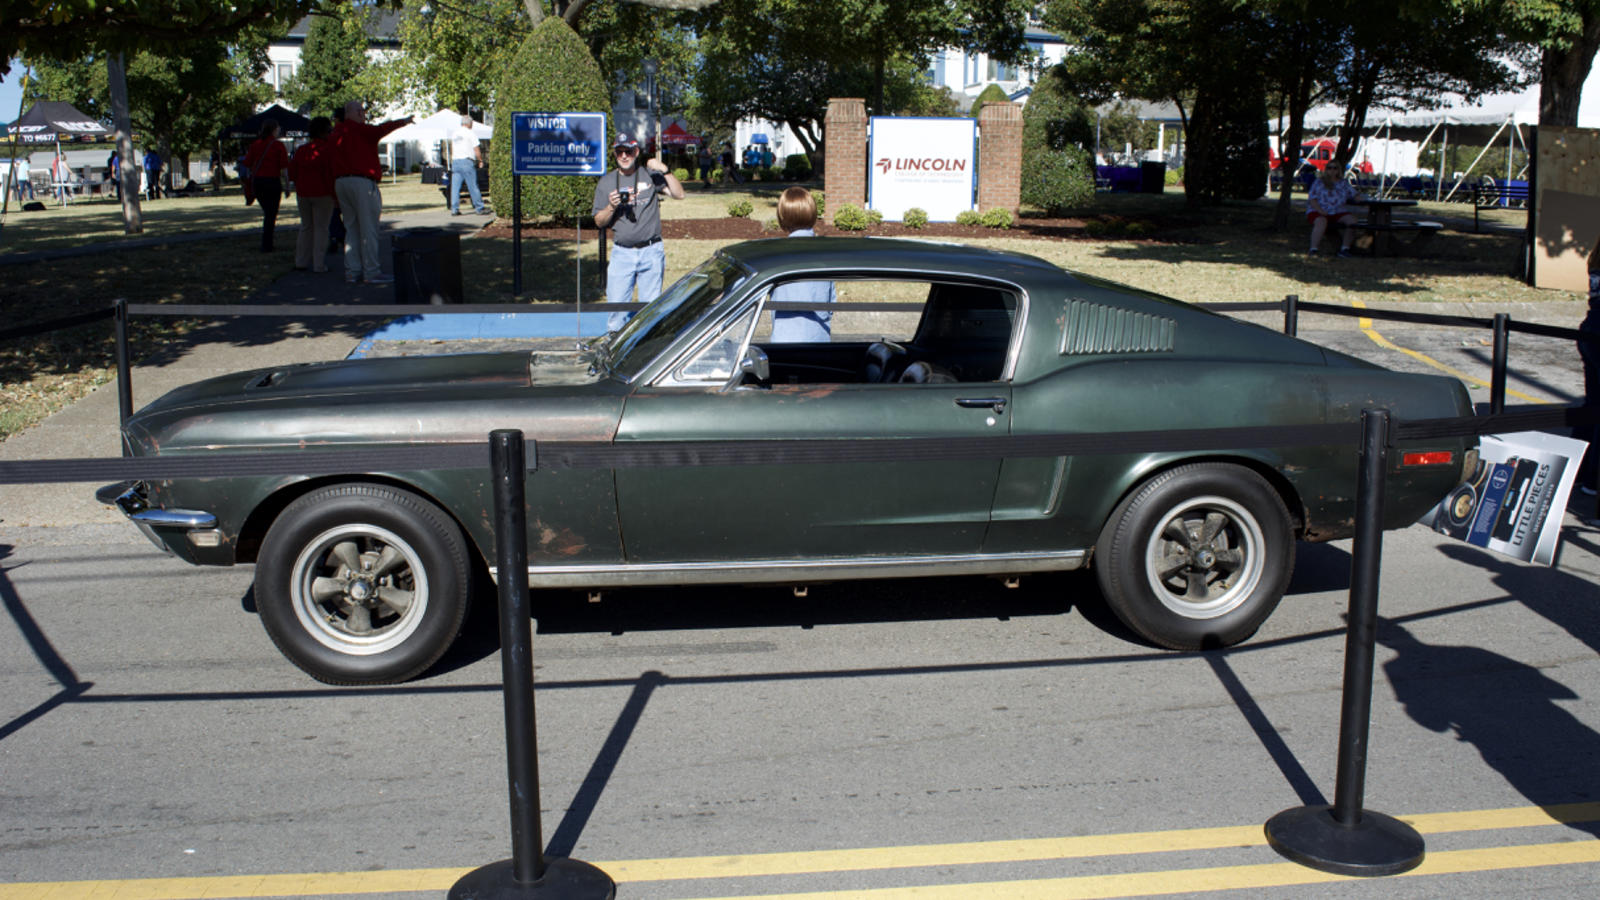 The Original 1968 Ford Mustang 390 Driven by Steve McQueen in the Movie Bullitt Displayed at Lincoln Tech's Nashville Campus